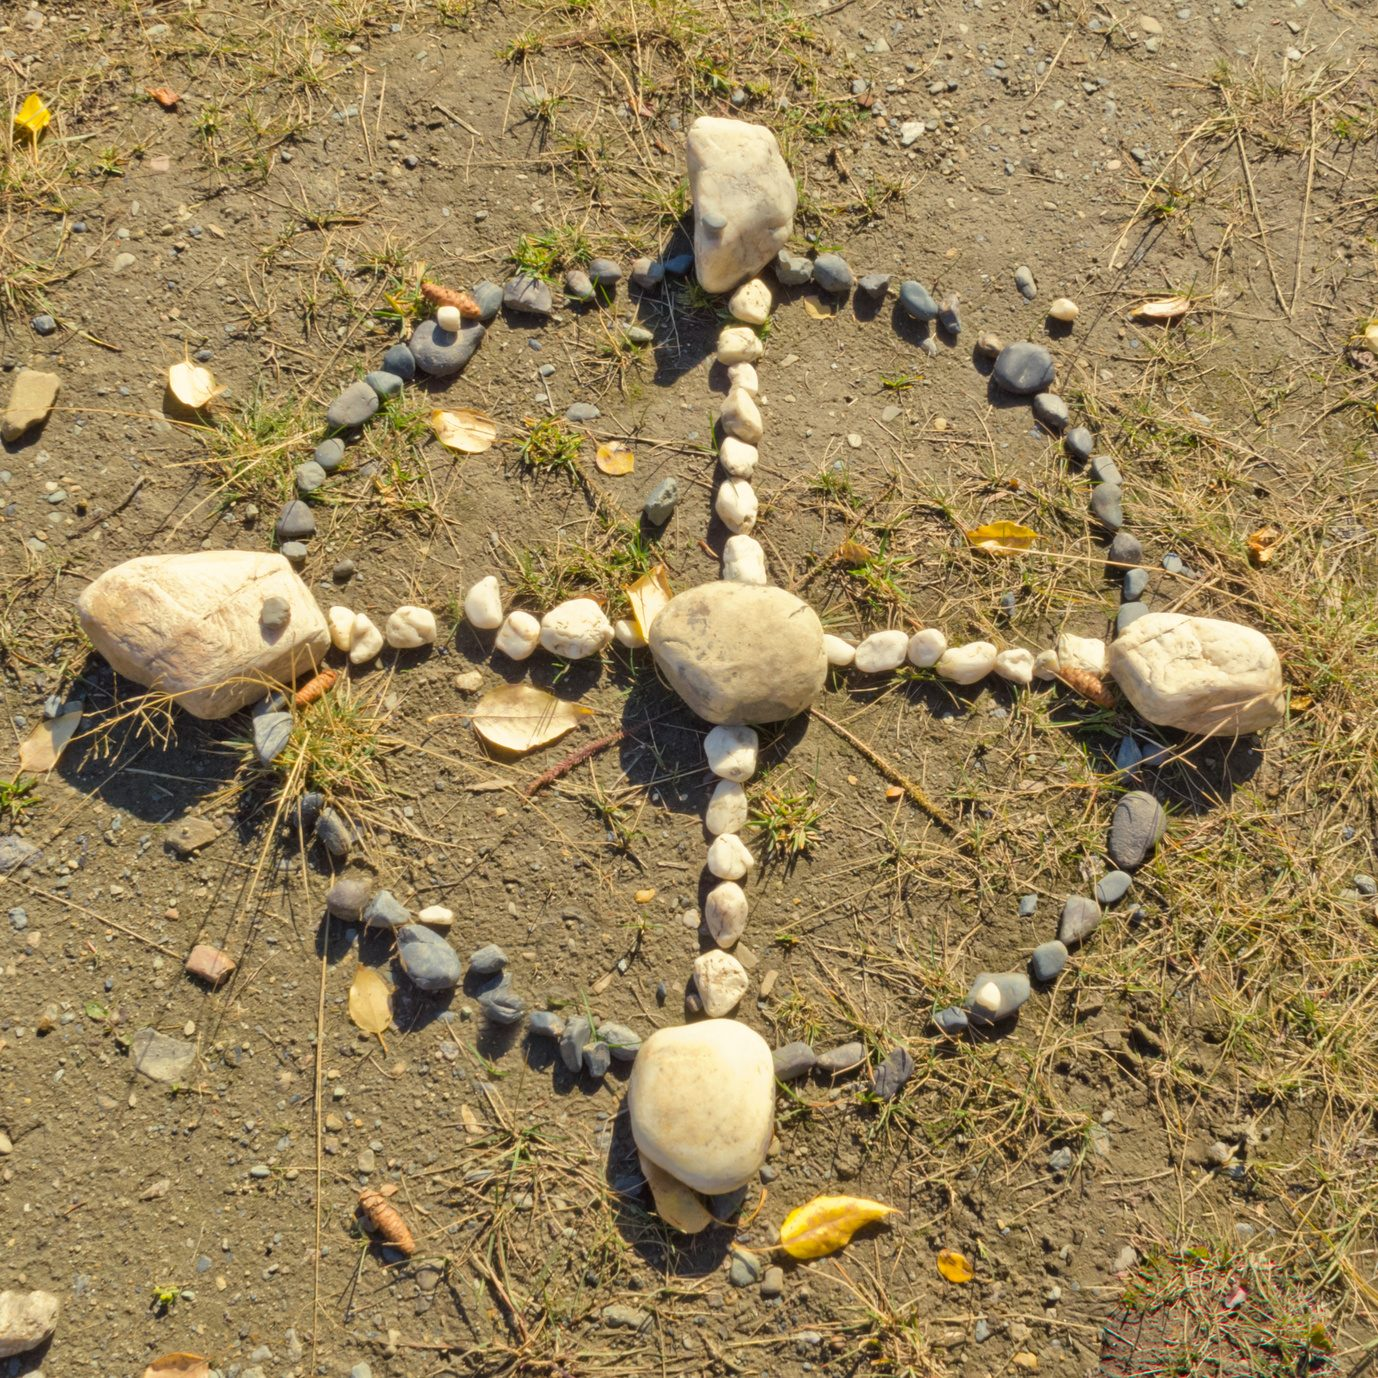 Native American Medicine Wheel or Sacred Hoop formed from stones on the ground